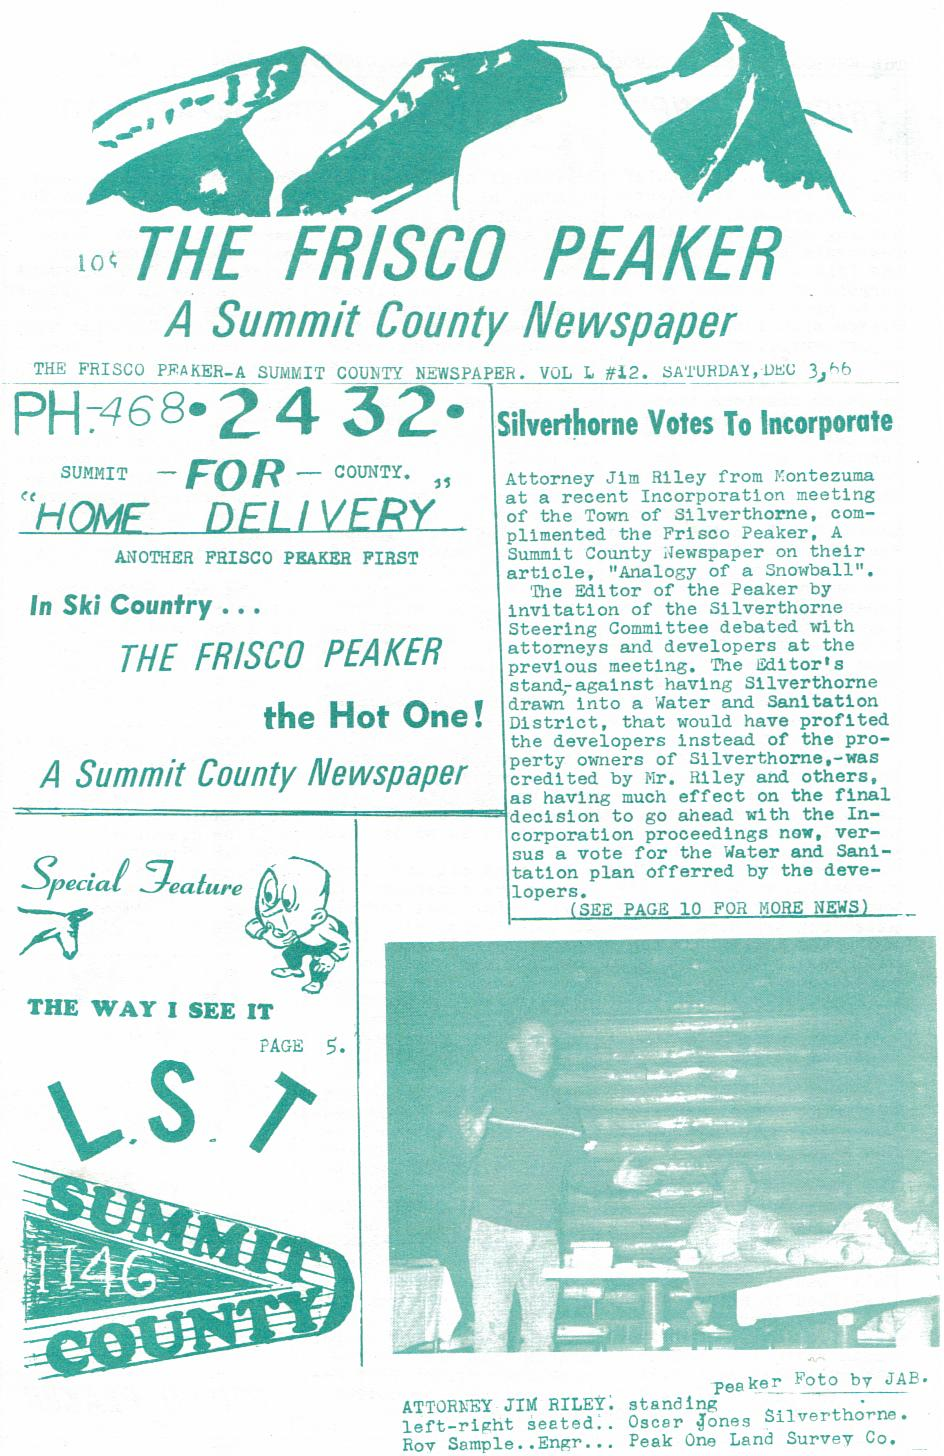 The Frisco Peaker was one of Summit County's newspapers, and one of the few to focus solely on Frisco news. This edition ran in 1966 with news of Silverthorne's incorporation running on the first page. The newspaper lasted only a few years before folding.